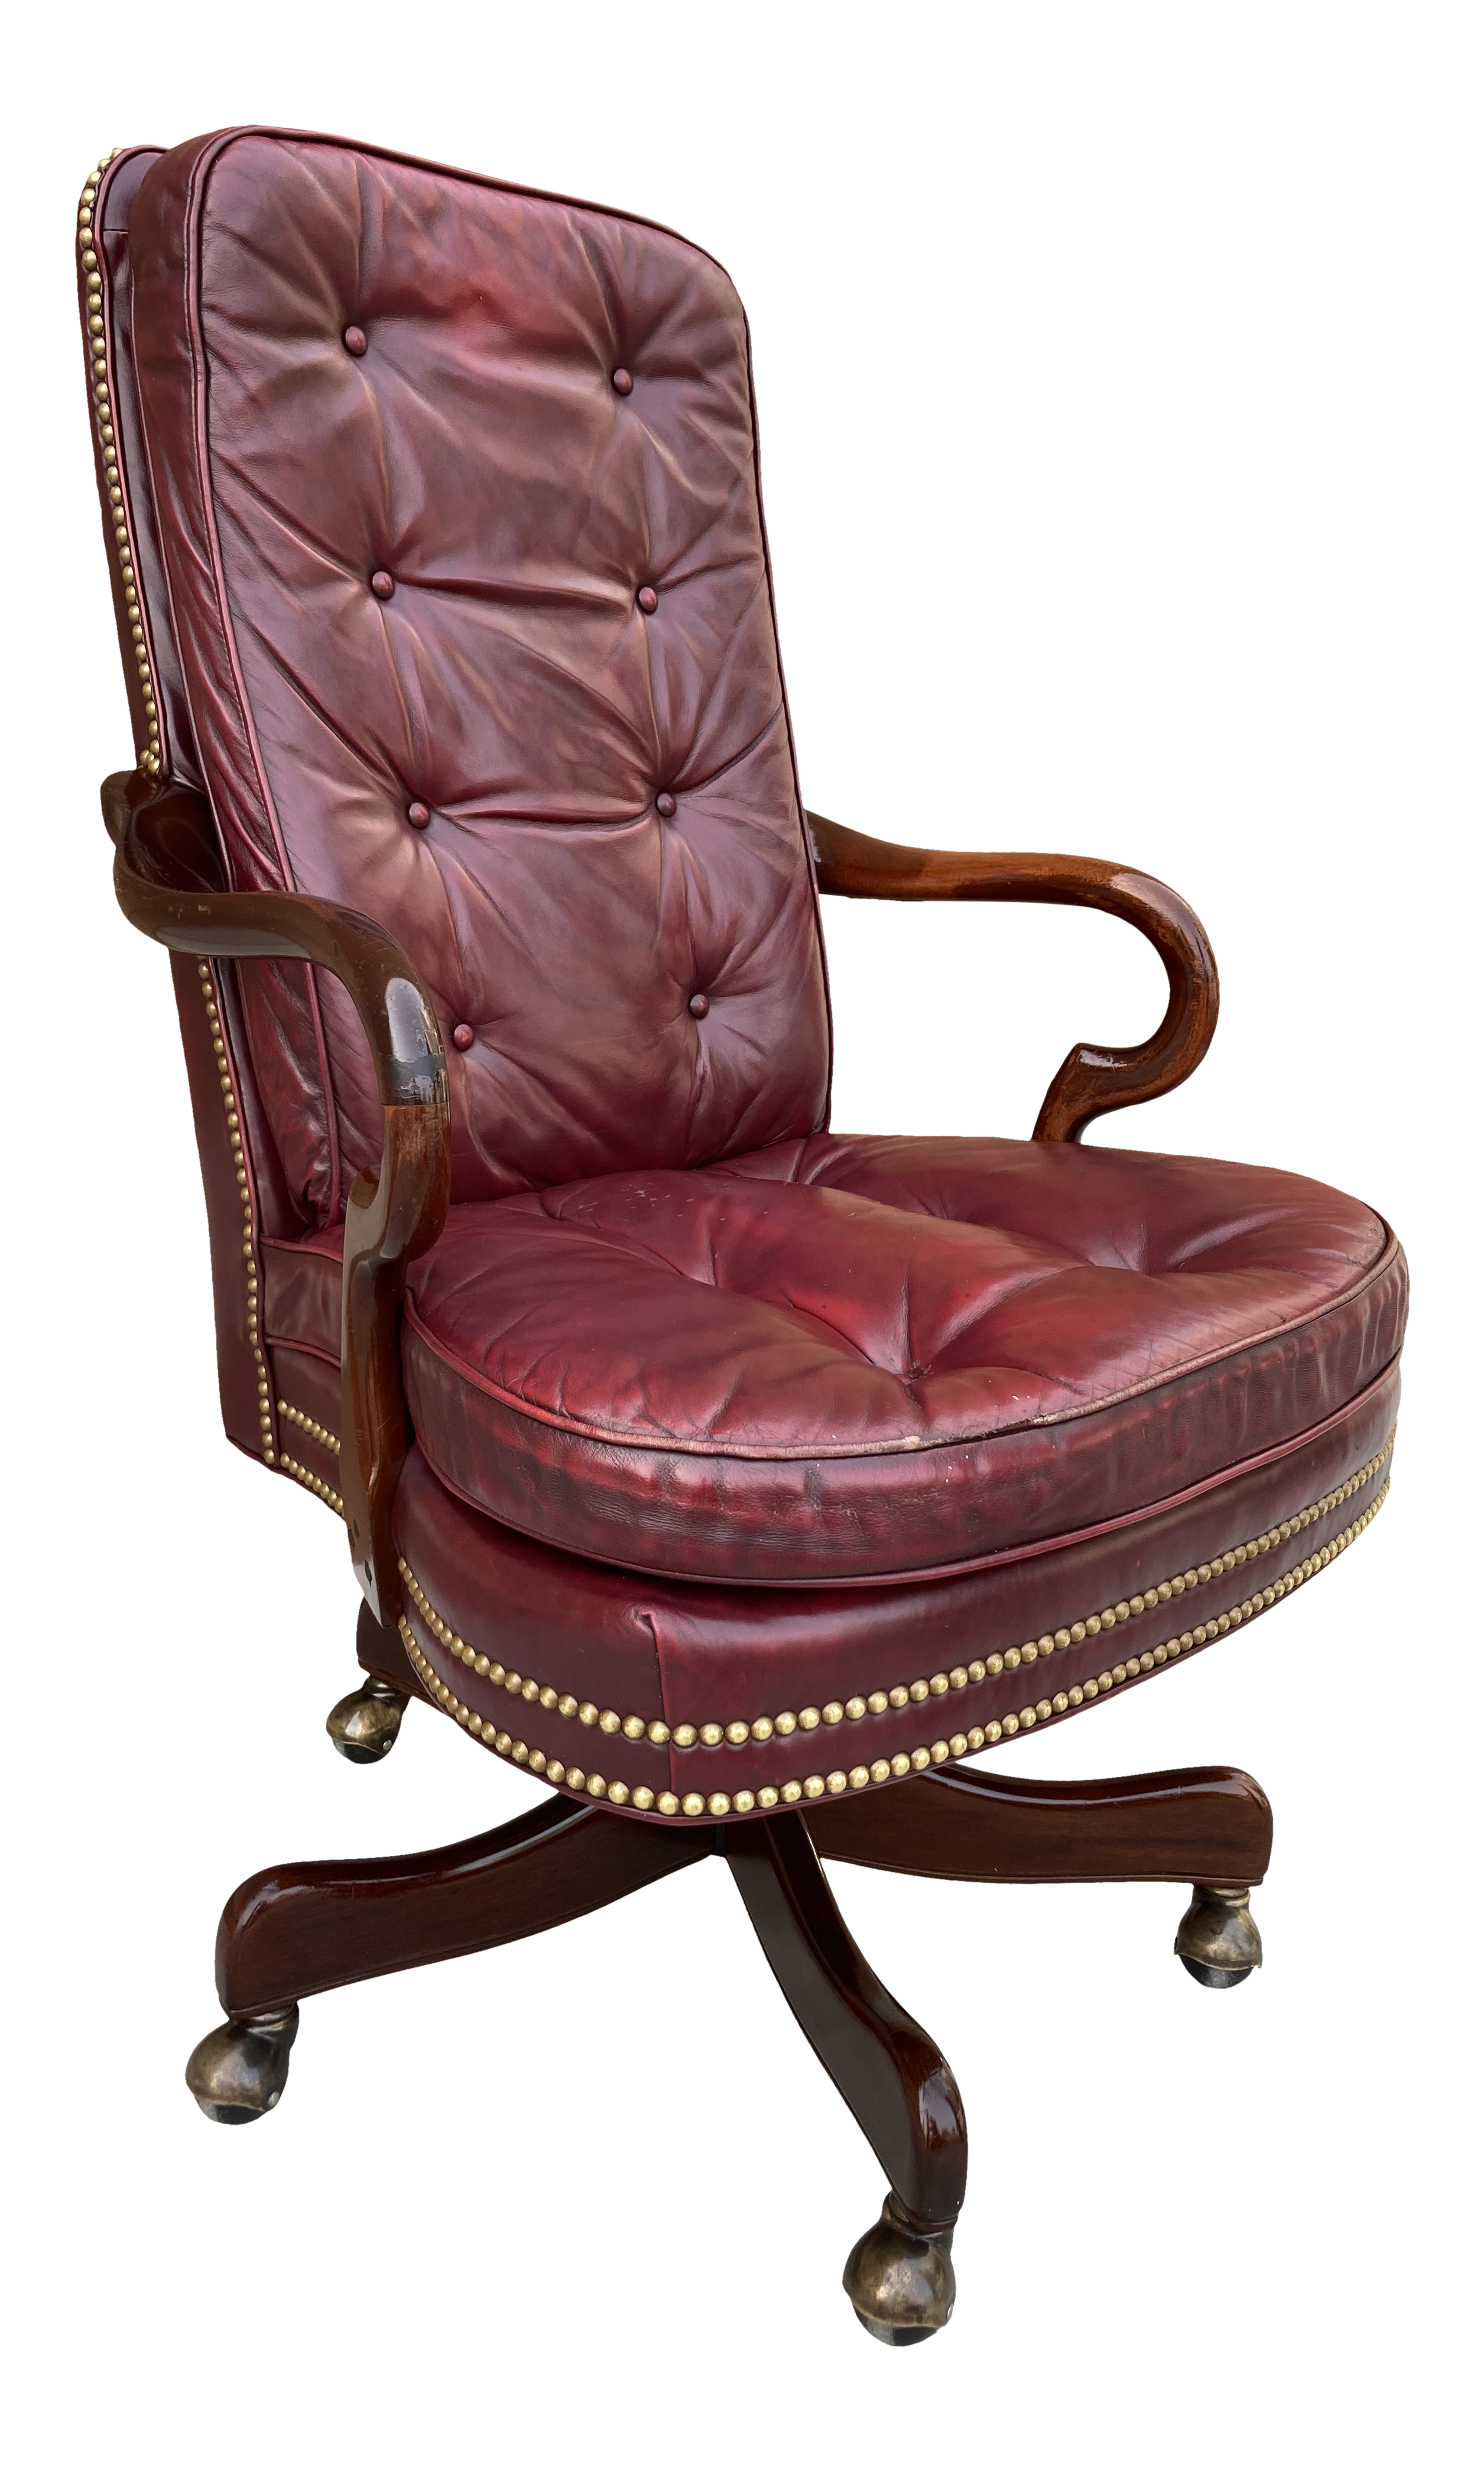 Traditional Mahogany Gooseneck Arm Tufted Leather Executive High Back By Cabot Wreen Chairish